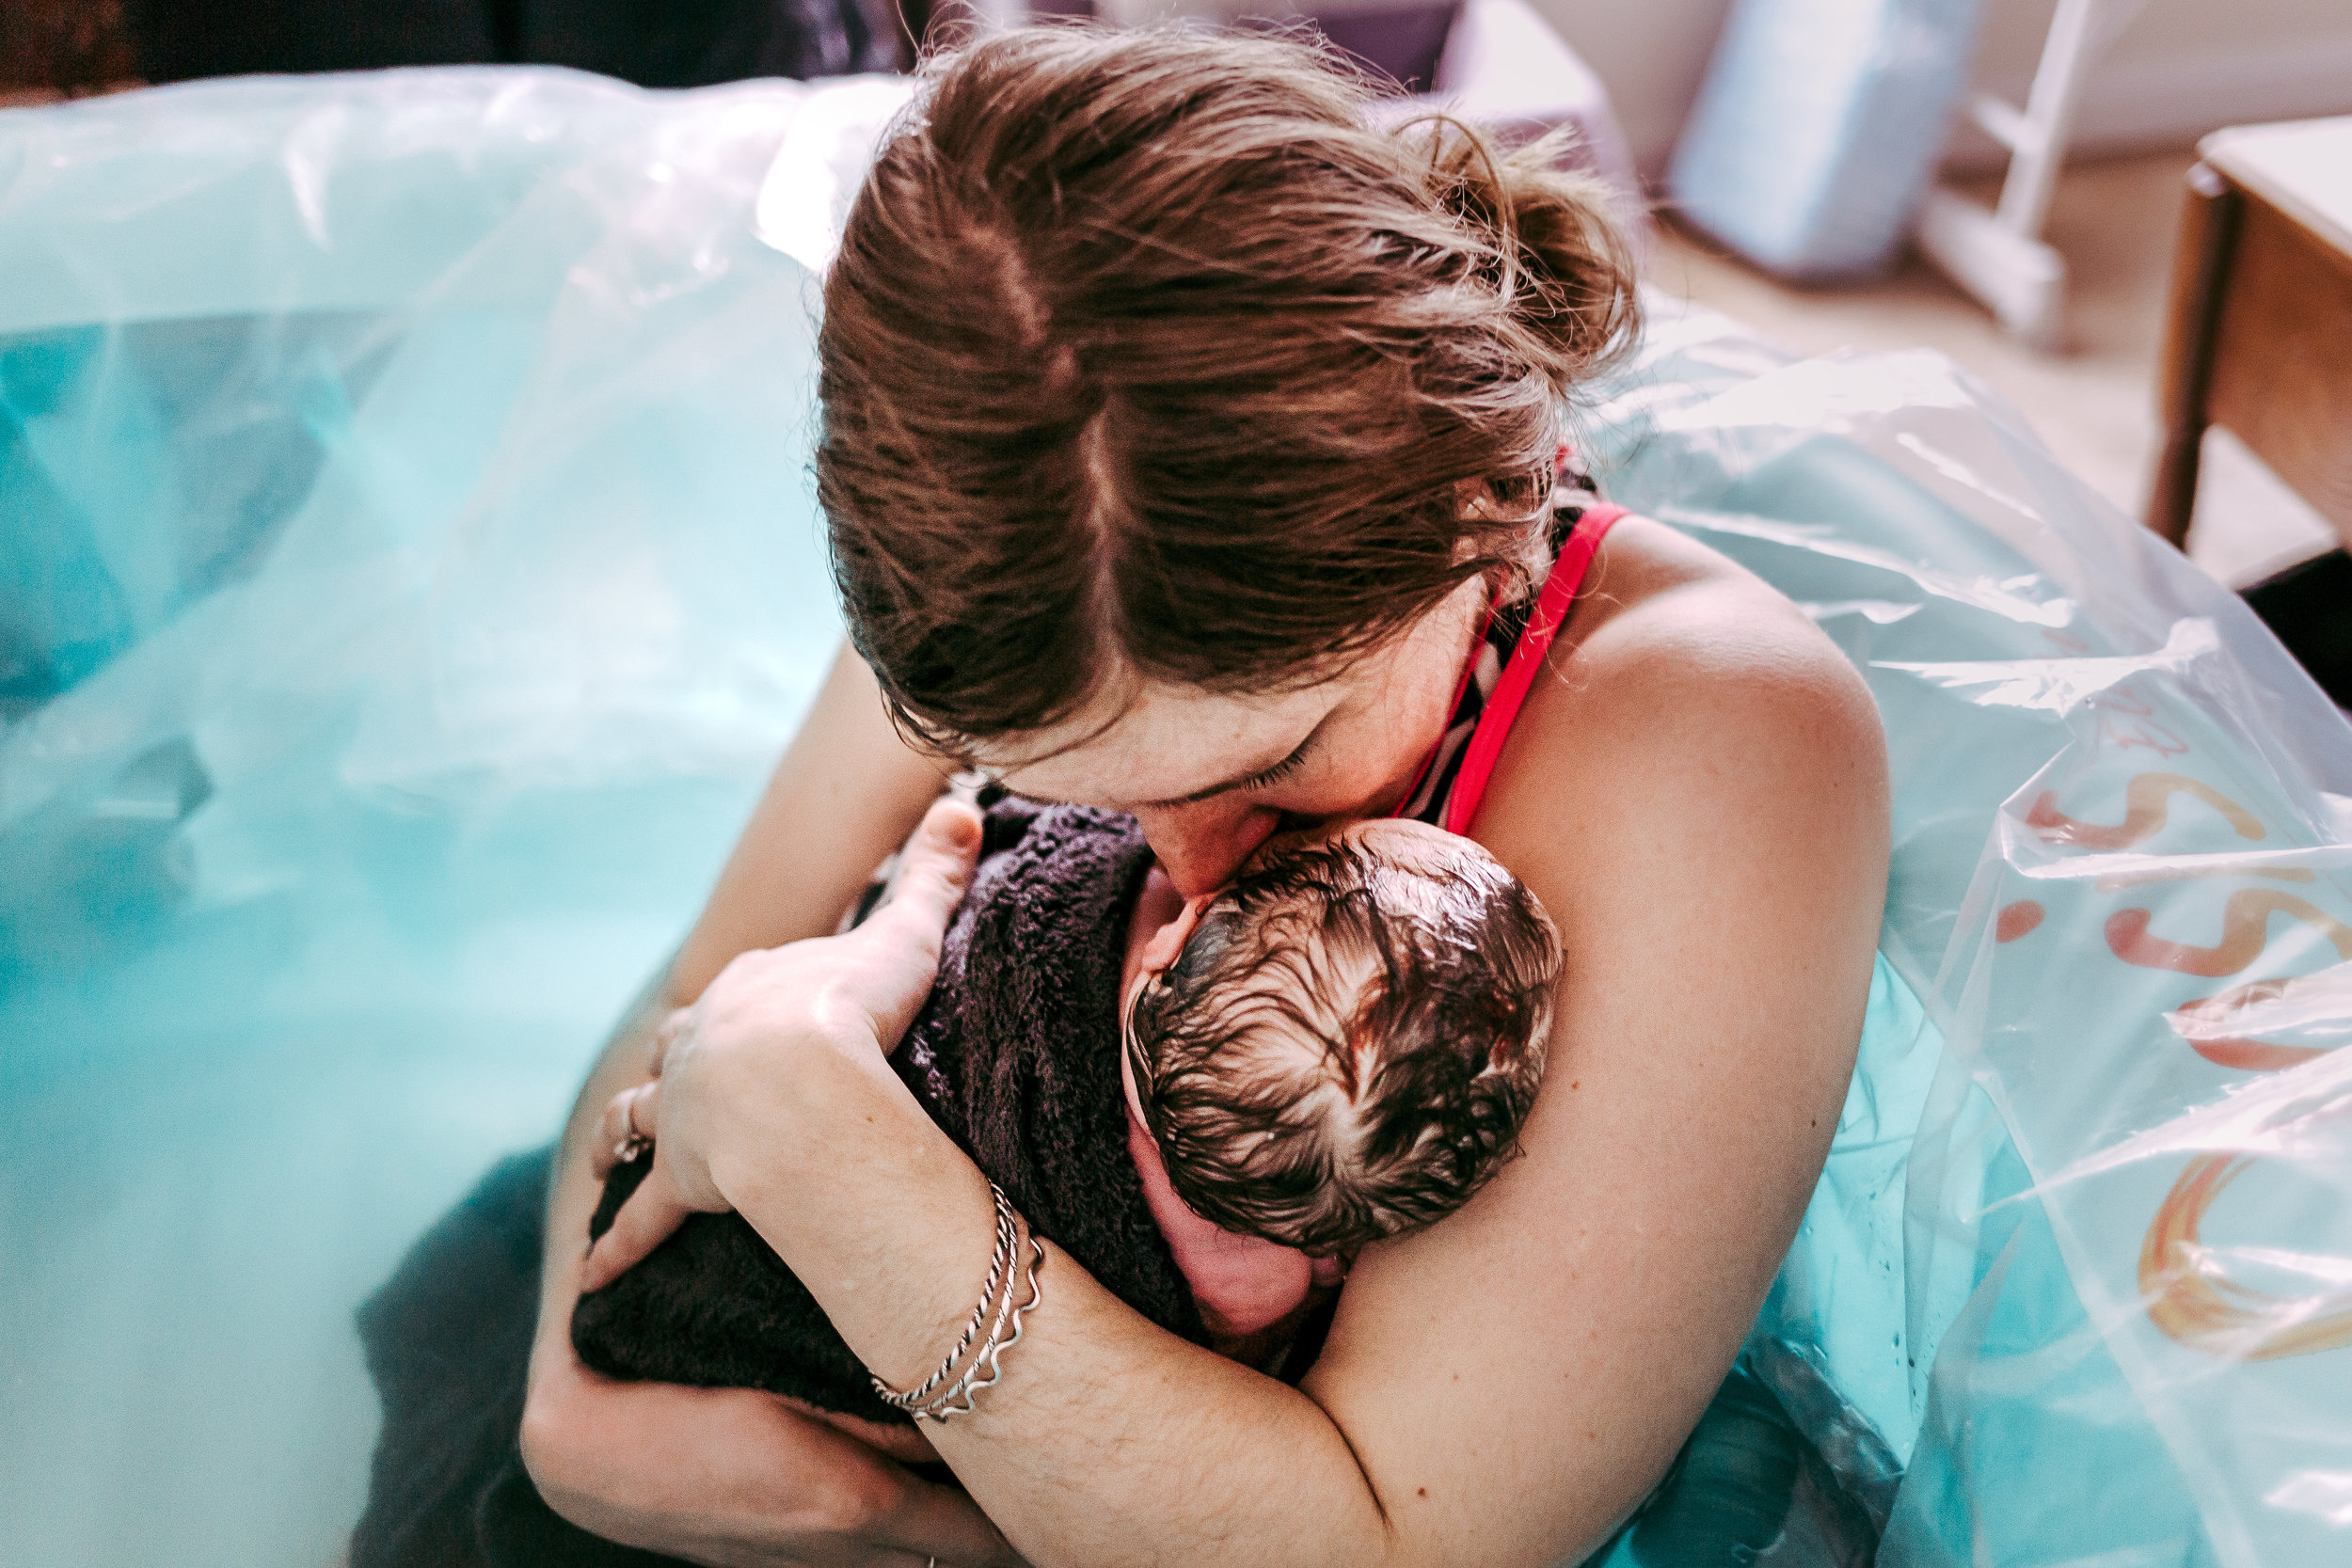 Photo of mom snuggling her baby close - Home Birth Midwives in Lynchburg, Virginia